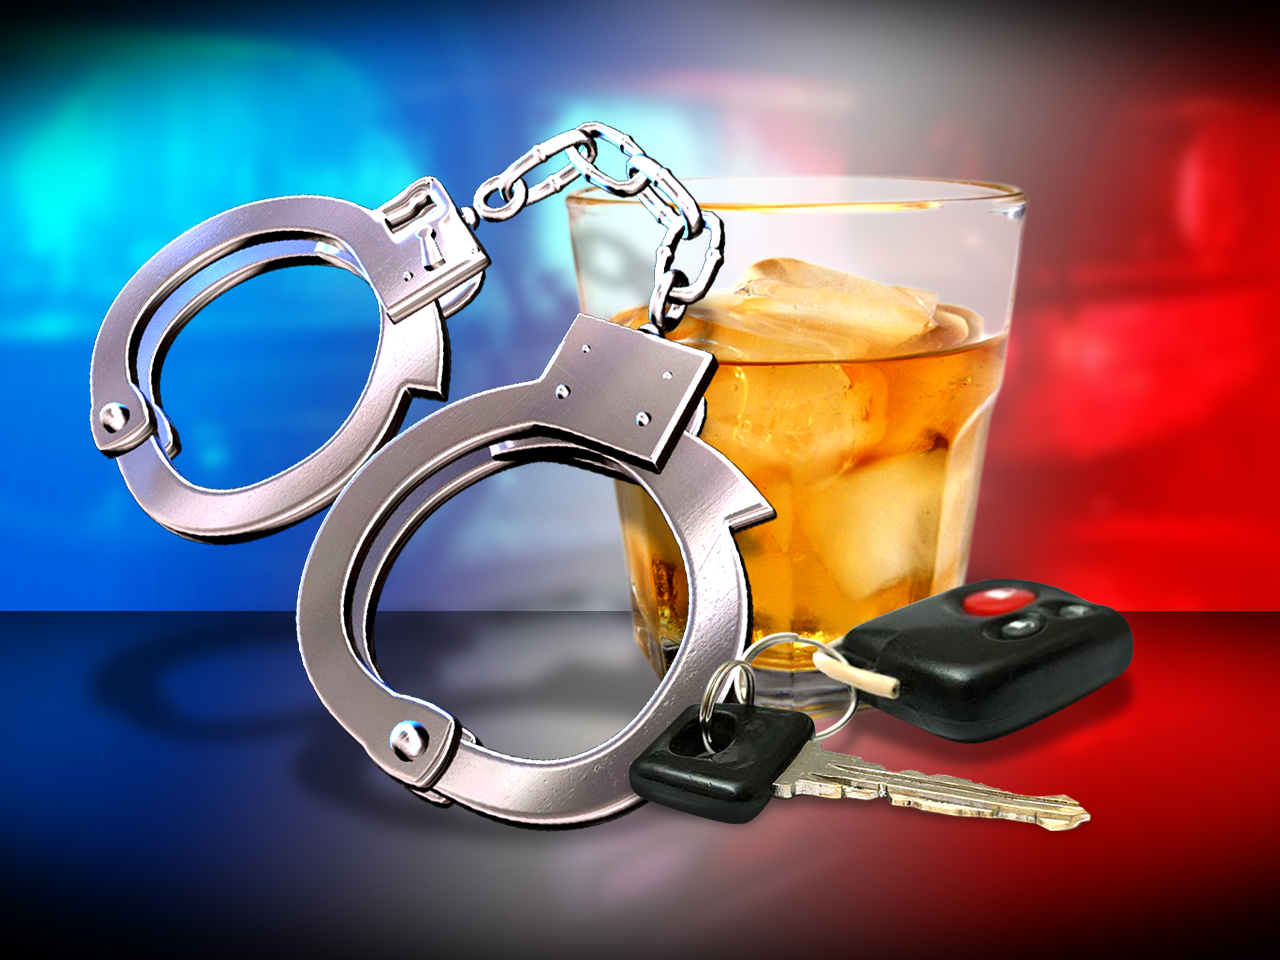 dui deterrence 2018-6-11 dui trainers and consultants, llc teaches police officers, prosecutors, public defenders, defense counsel, and others the fundamentals of dui detection, testing, reporting, and litigation.